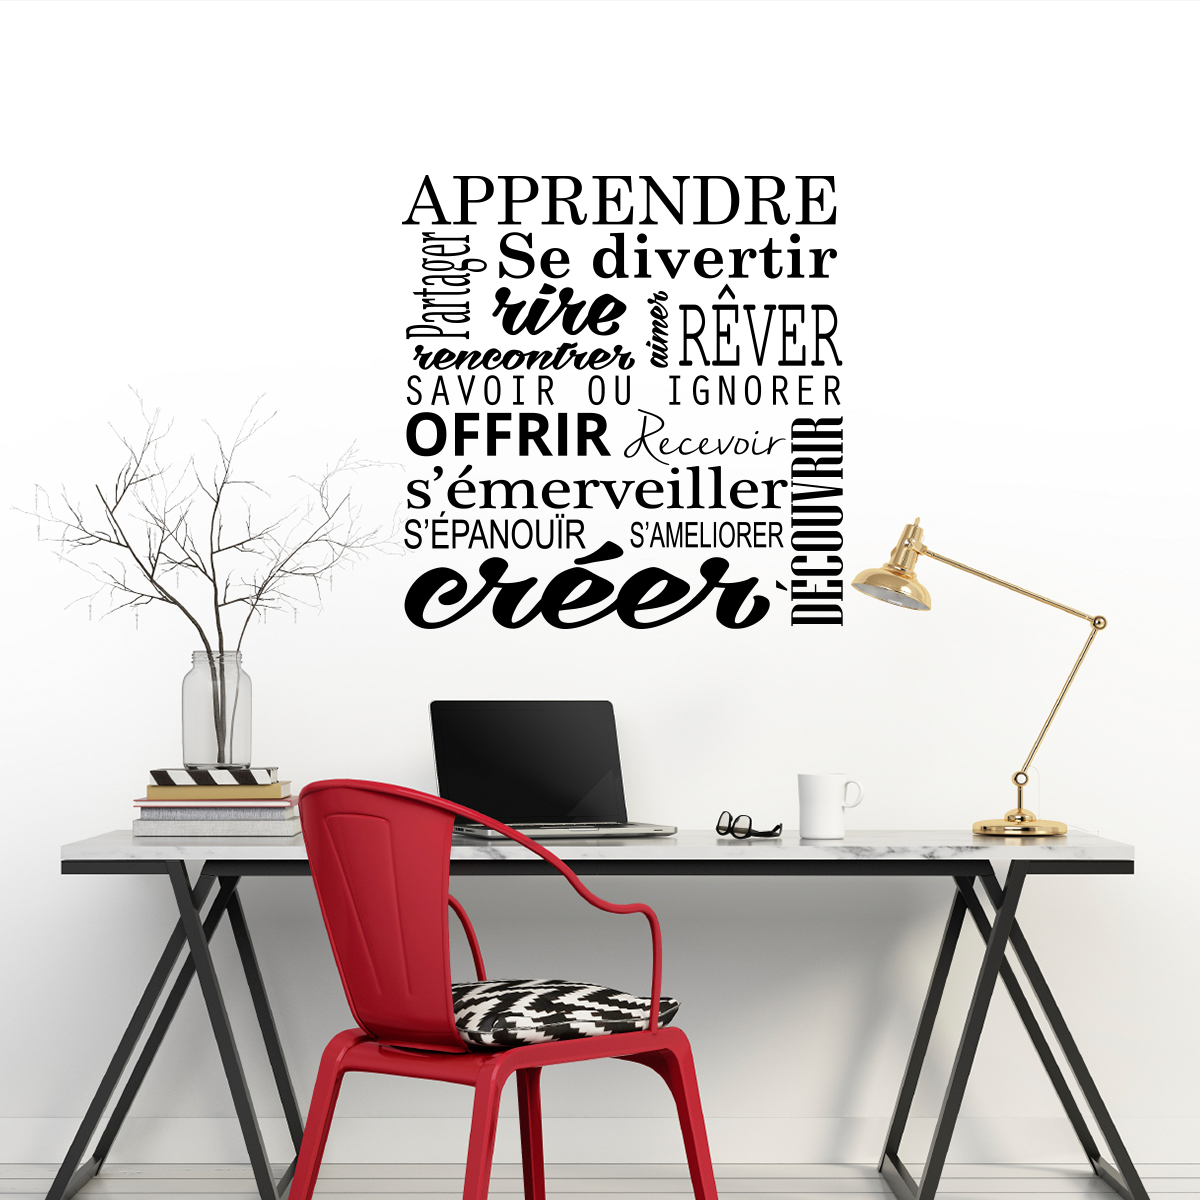 sticker citation apprendre cr er stickers citations fran ais ambiance sticker. Black Bedroom Furniture Sets. Home Design Ideas